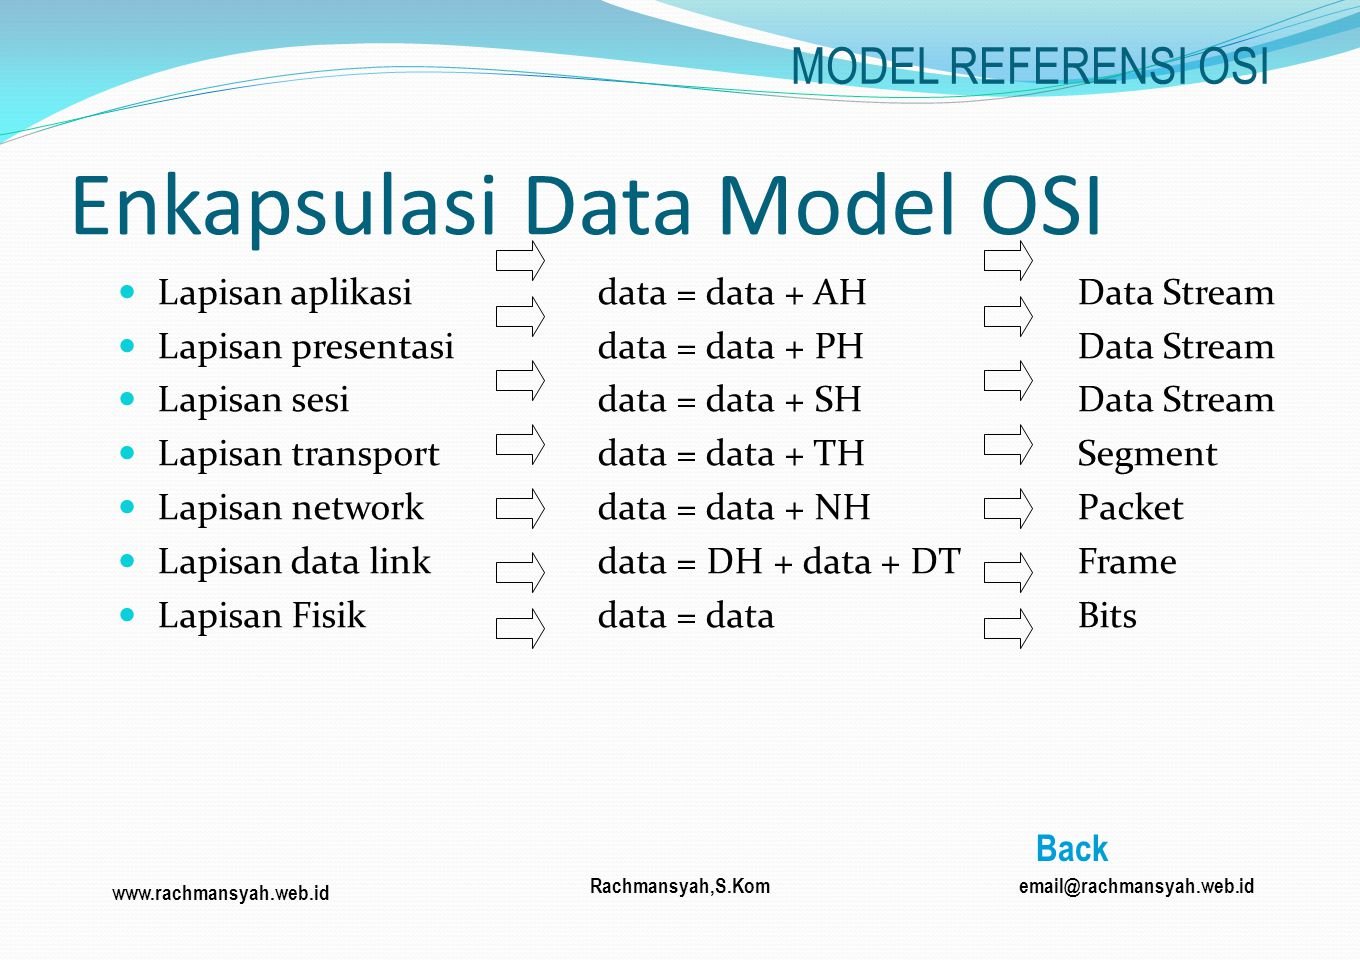 Enkapsulasi Data Model OSI